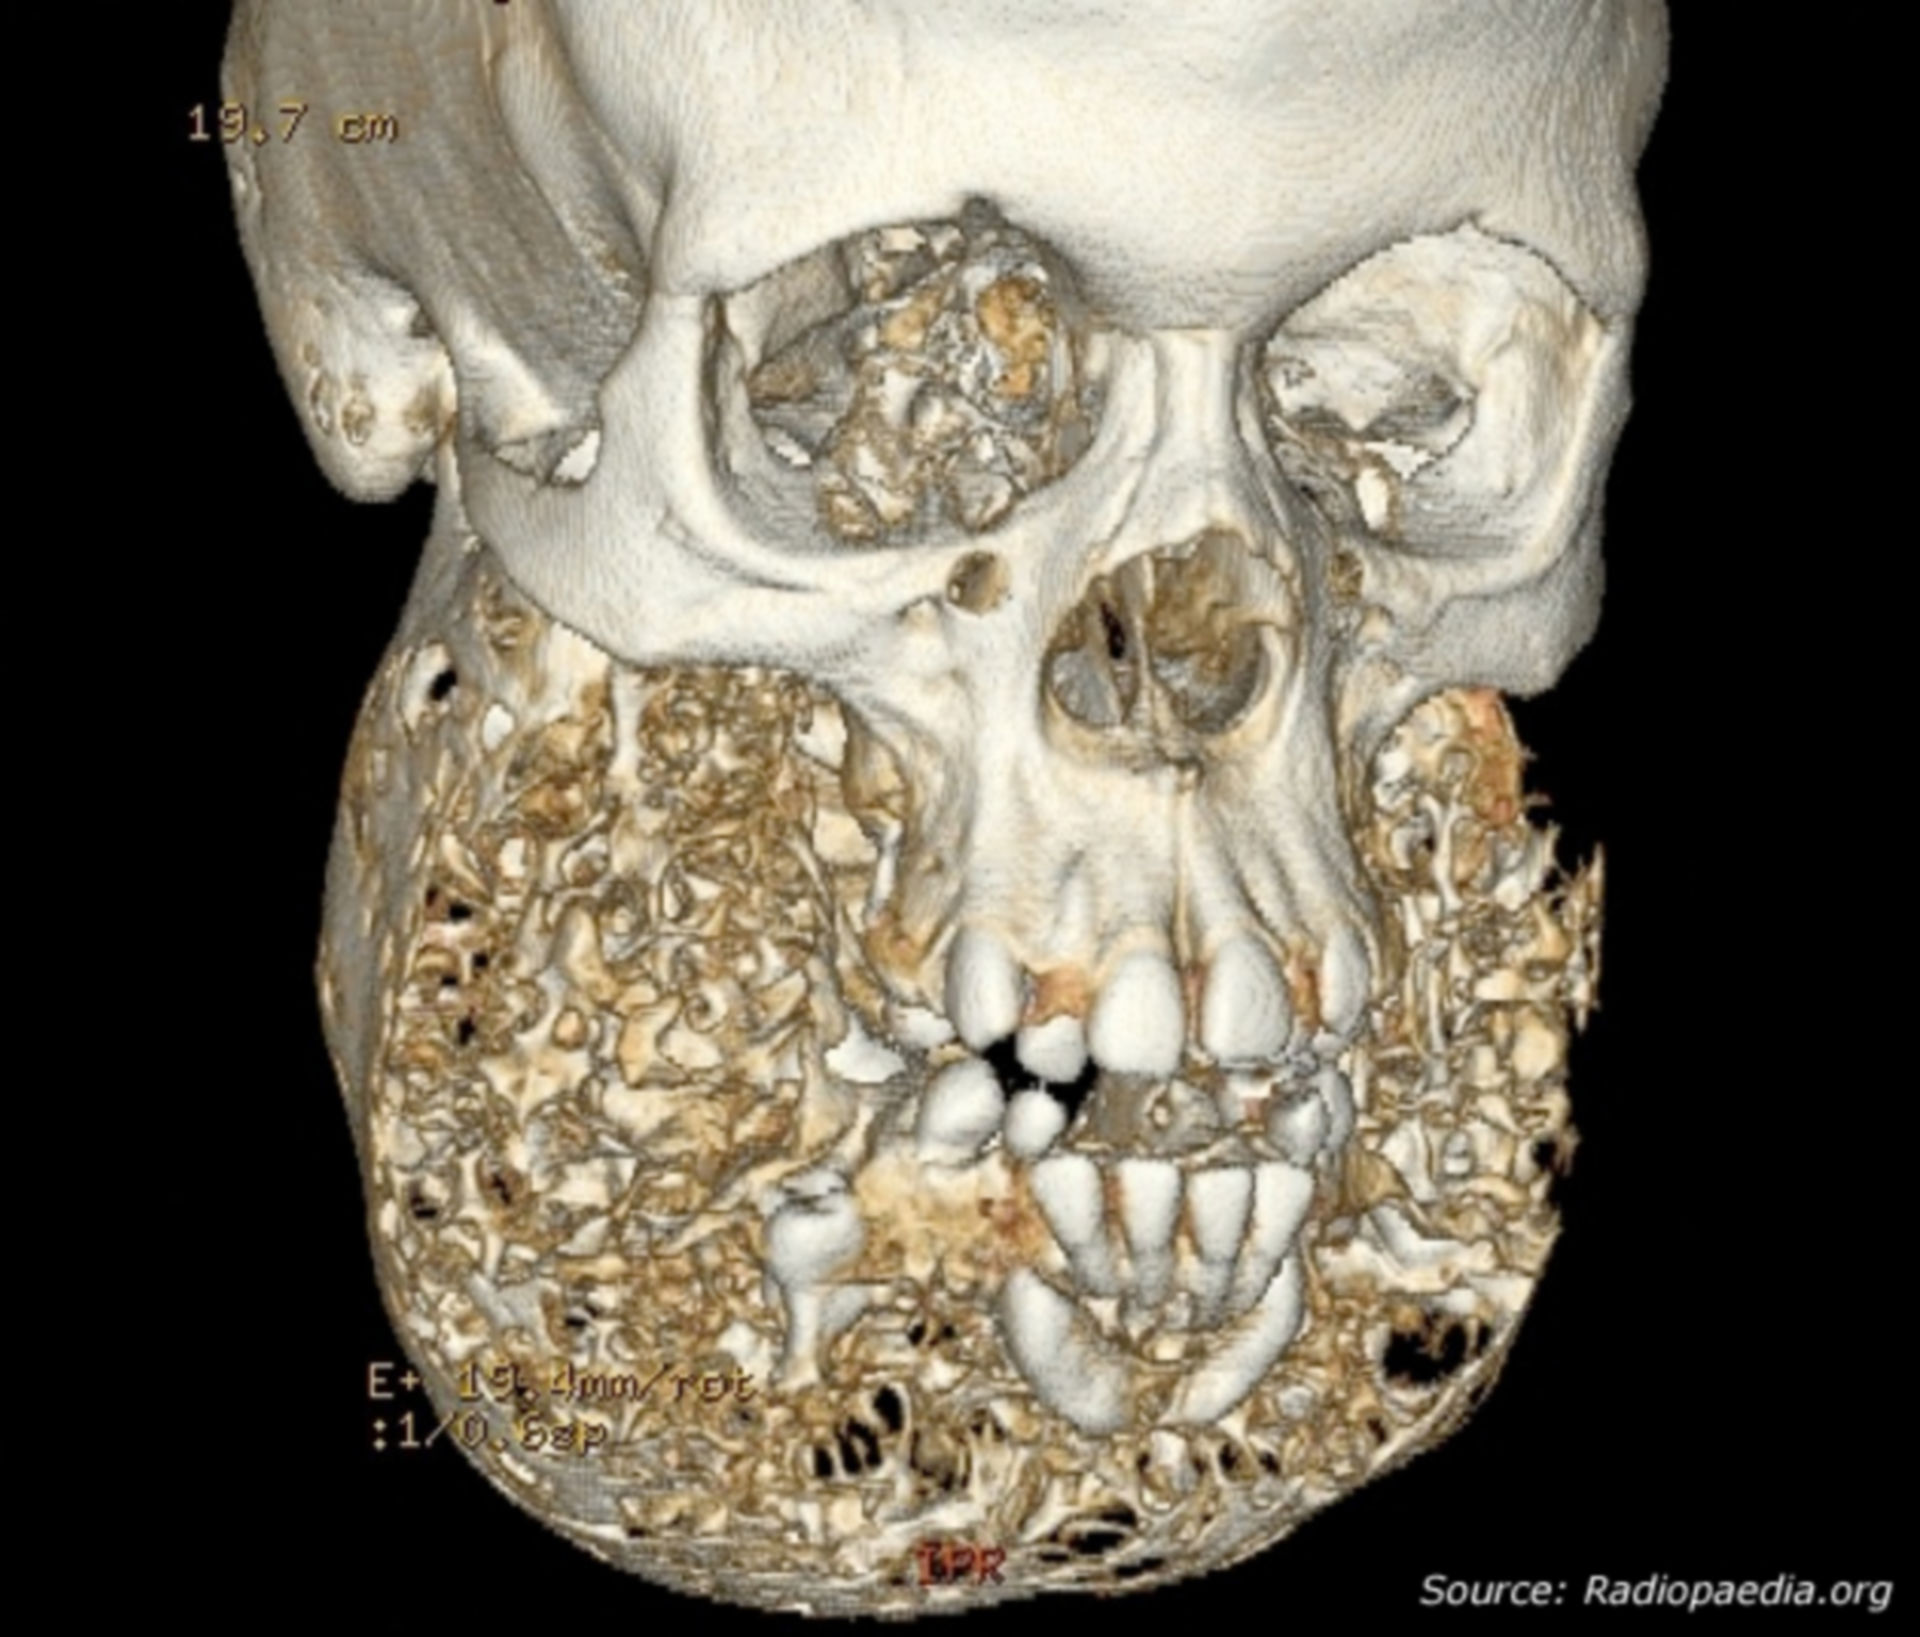 3D CT image of the skull